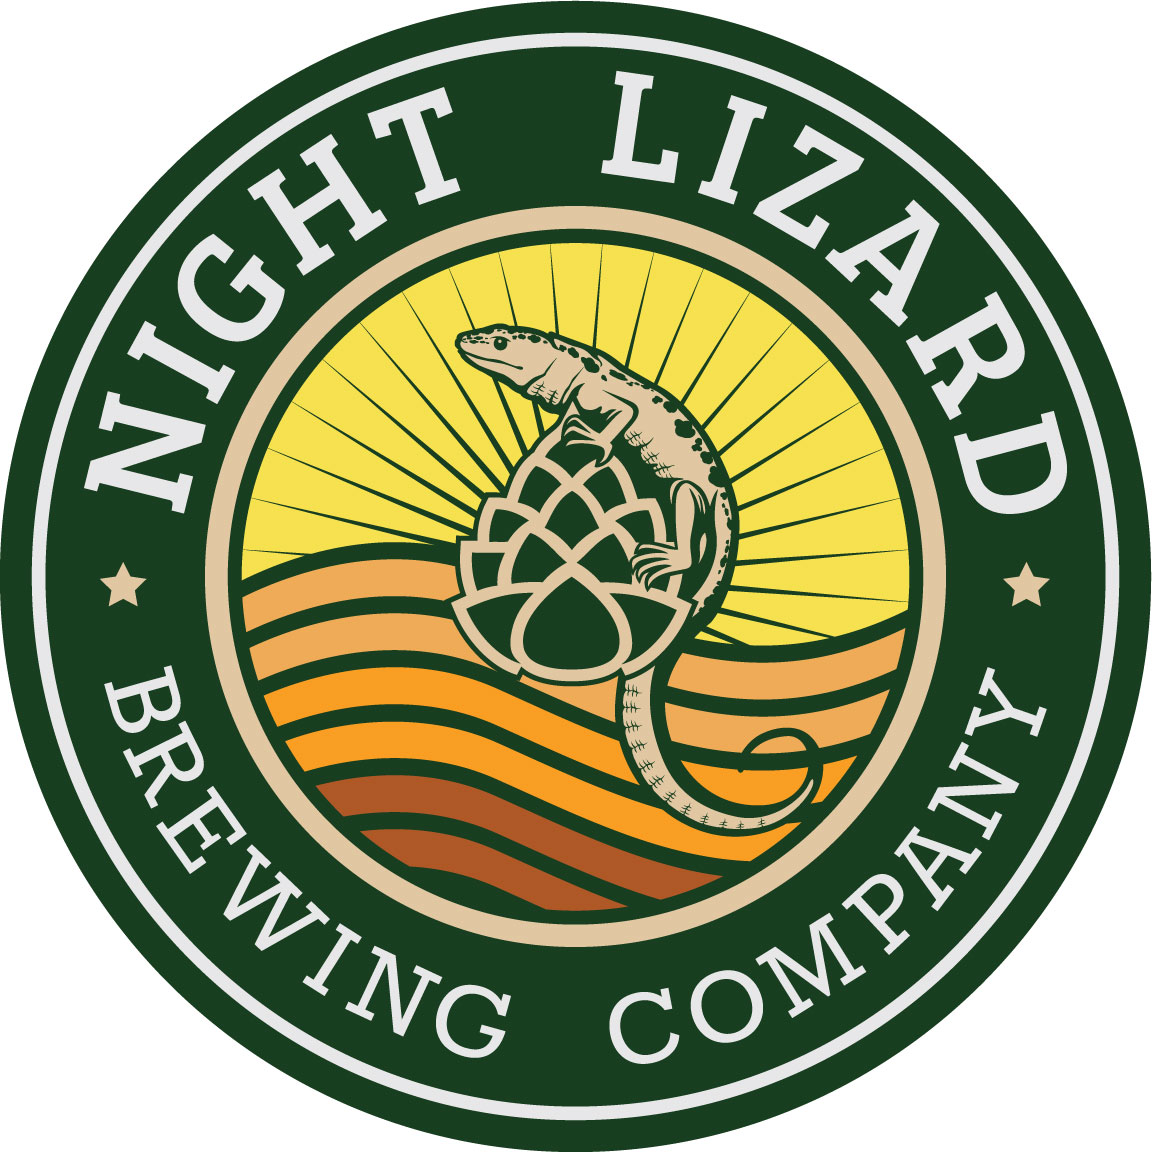 NightLizard_logo_circle_CMYK.jpg